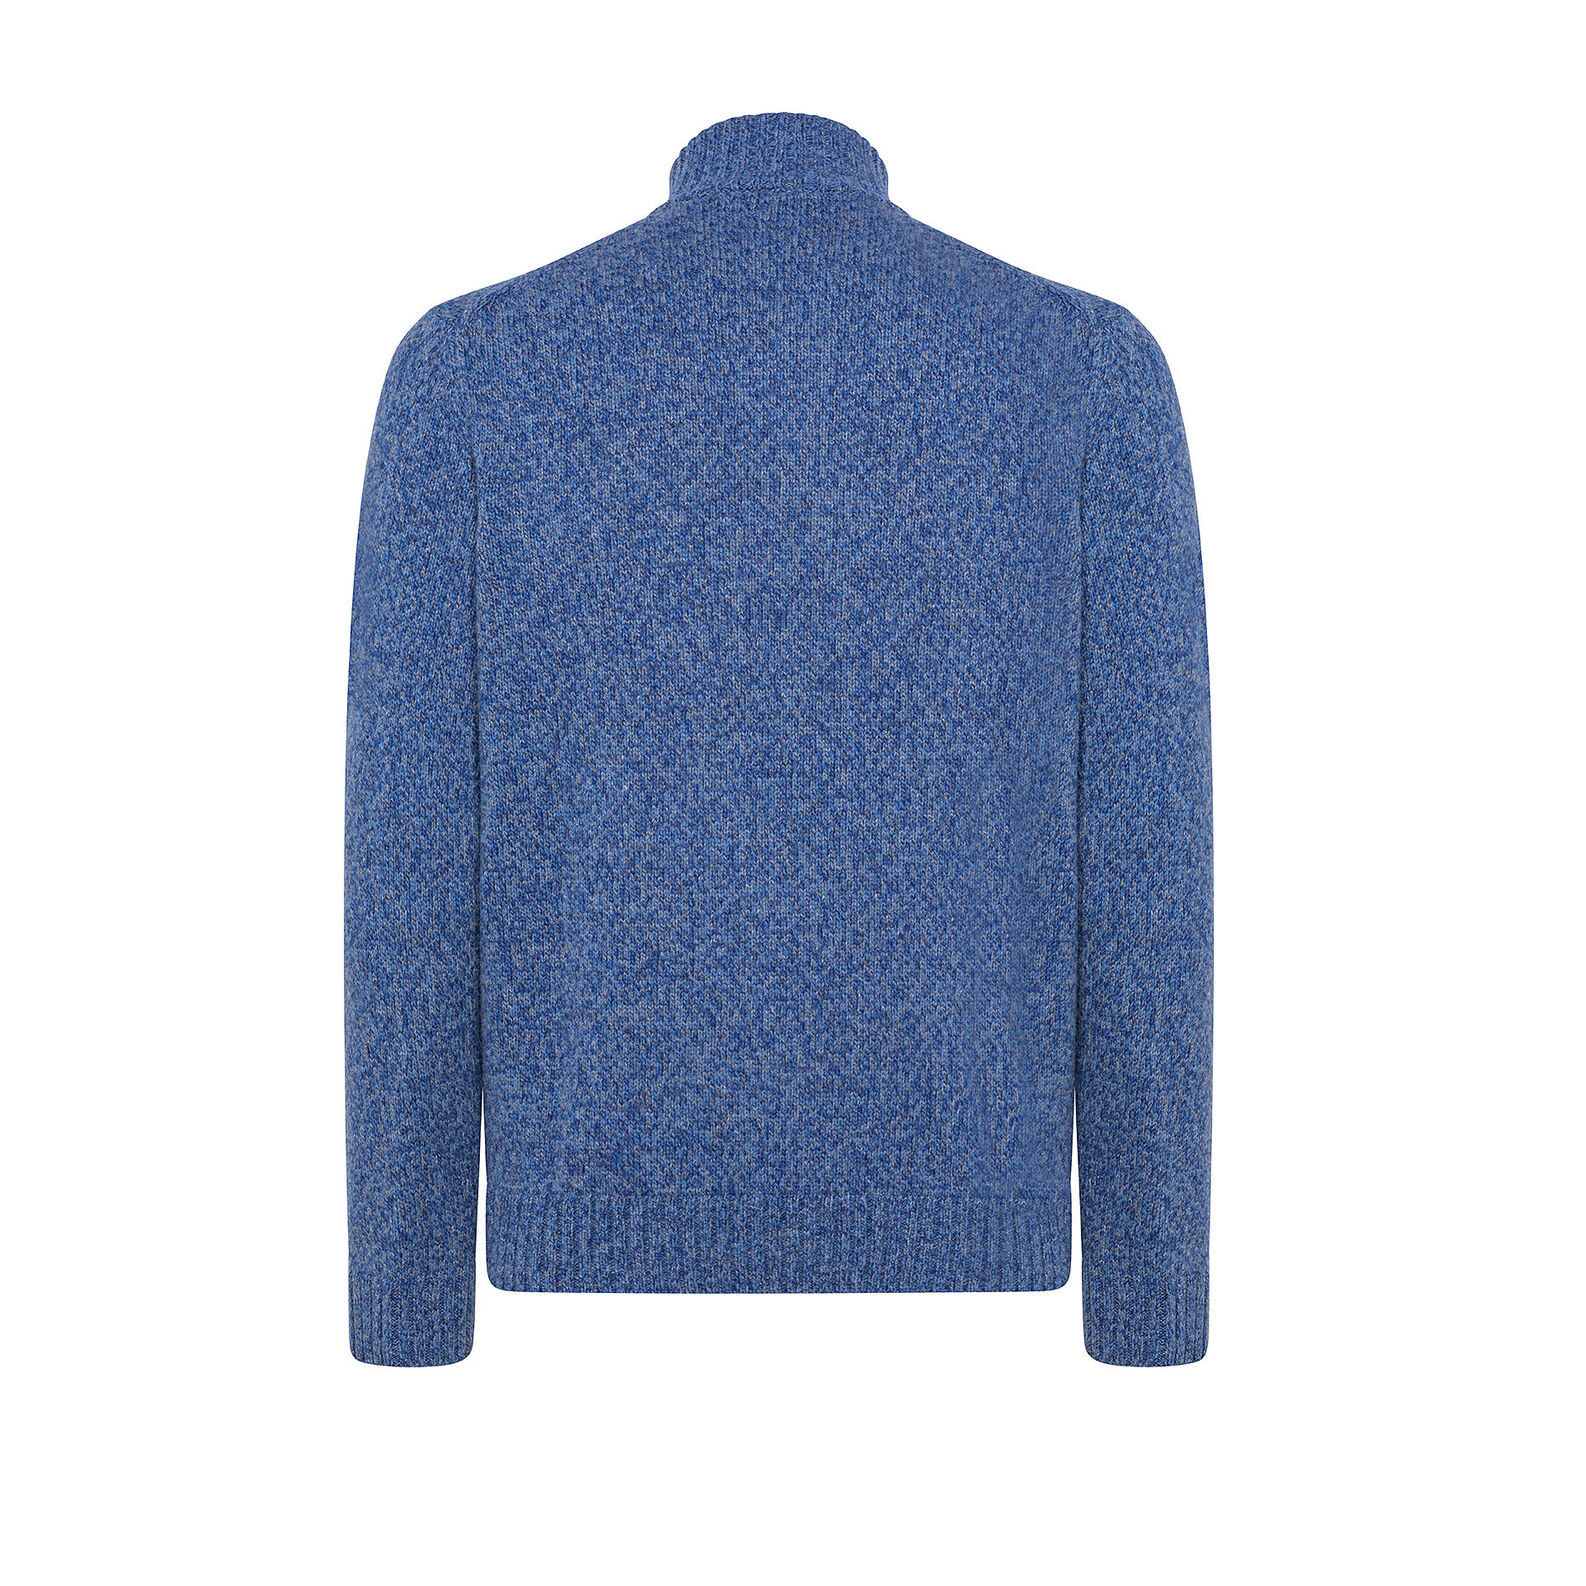 High-necked pullover with mouliné design